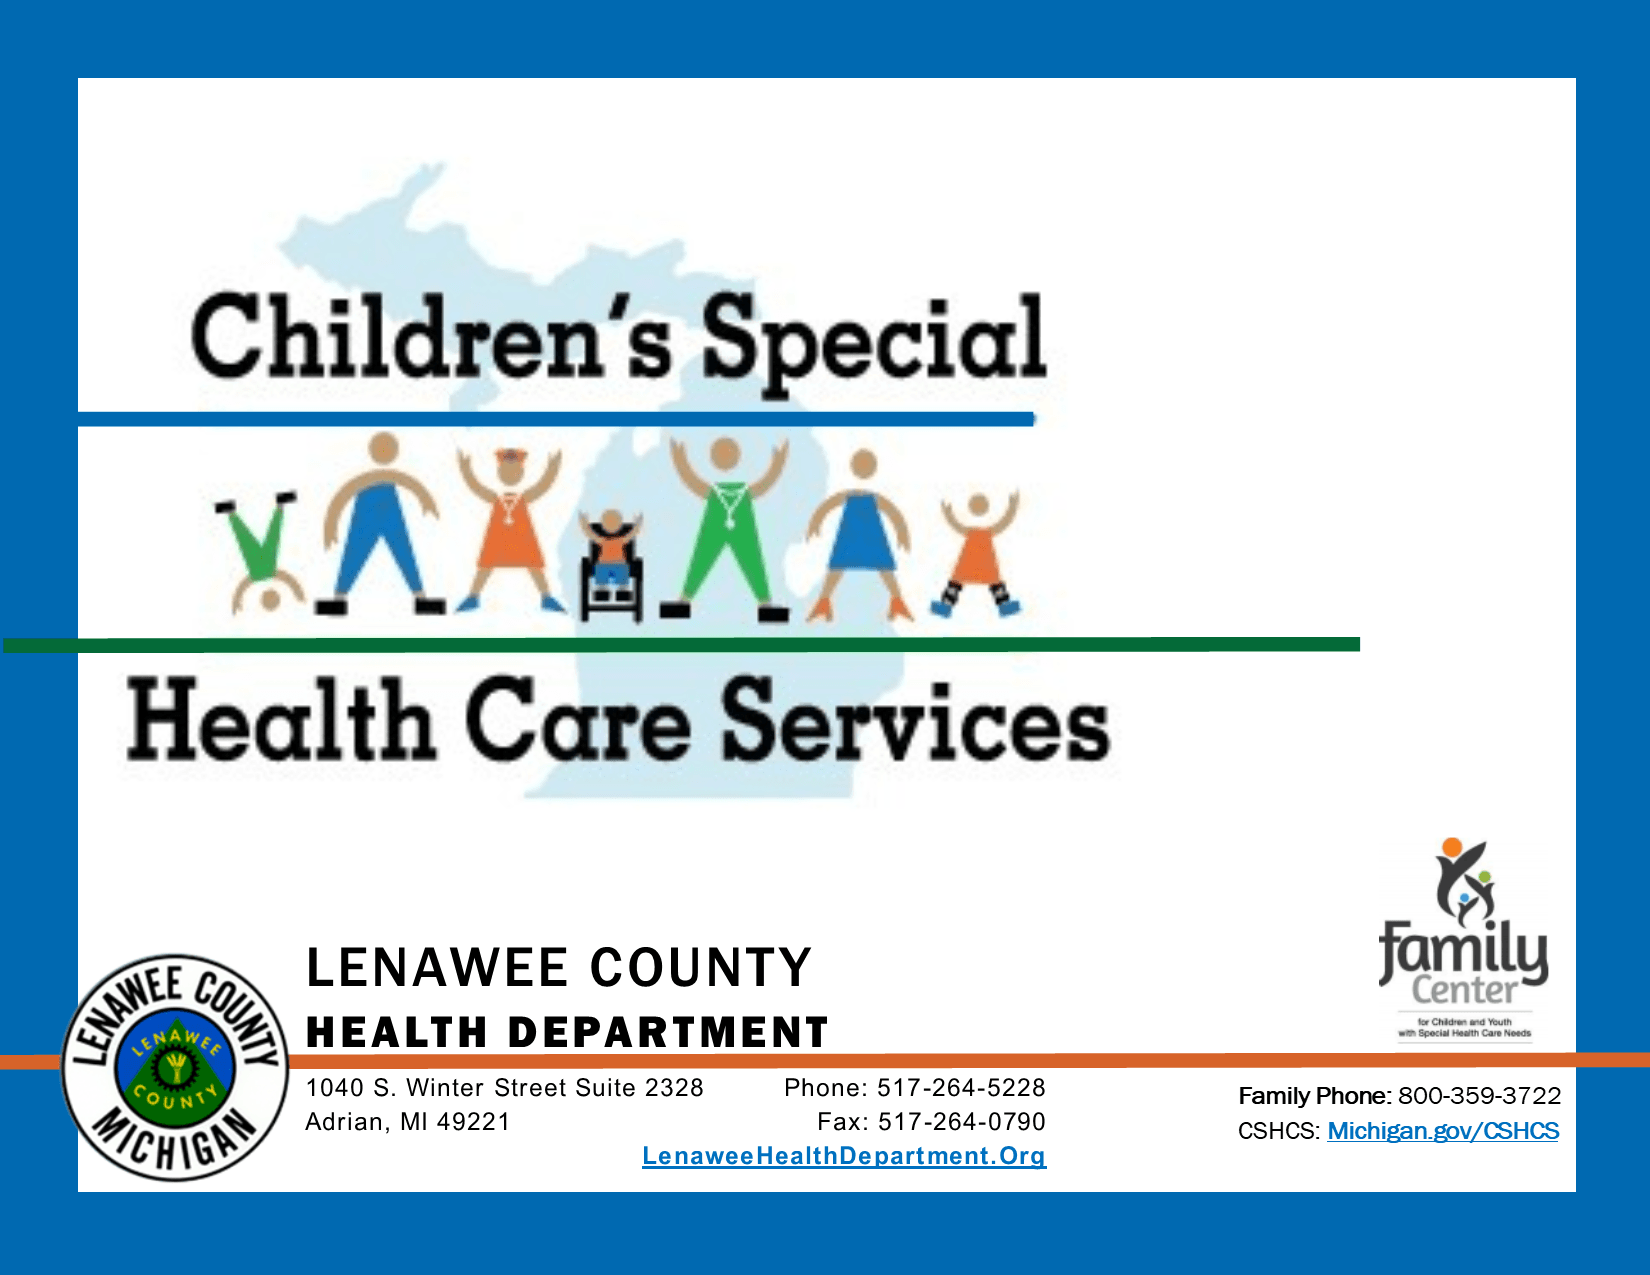 Childrens Special Health Care Services logo of clipart kids